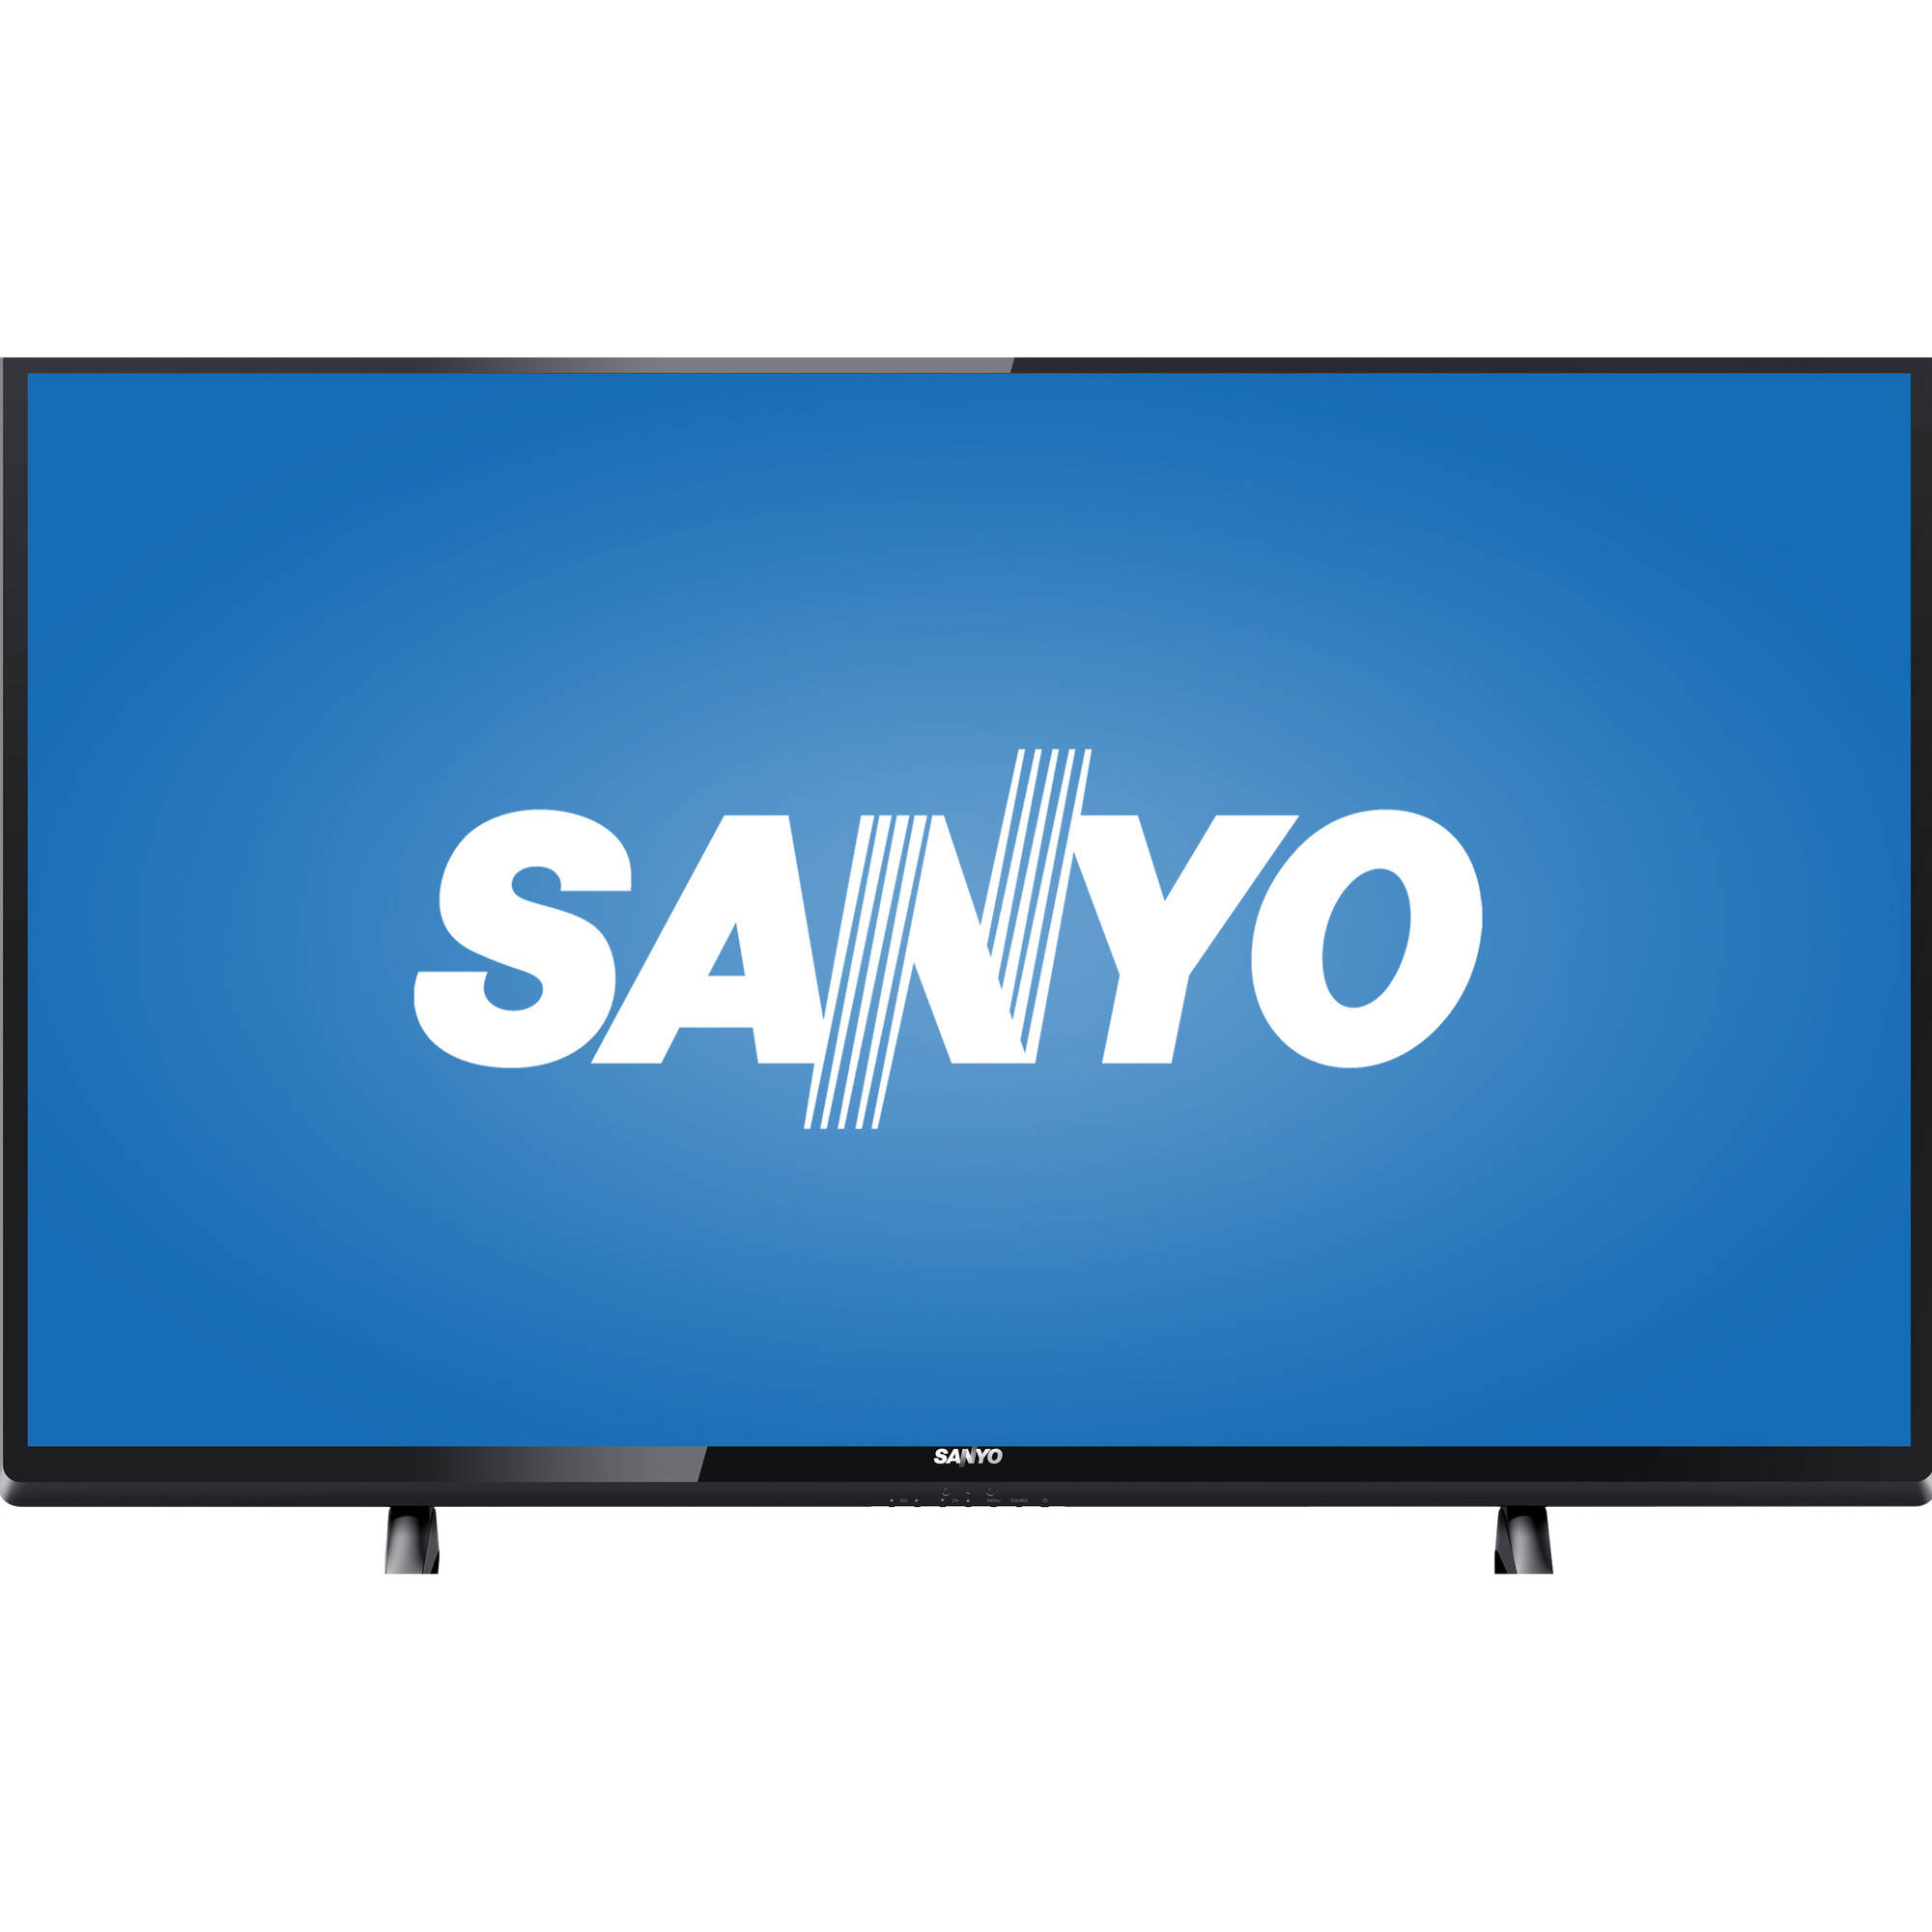 "Click here to buy Sanyo FW50D36F 50"" 1080p 60Hz LED LCD HDTV by Sanyo."